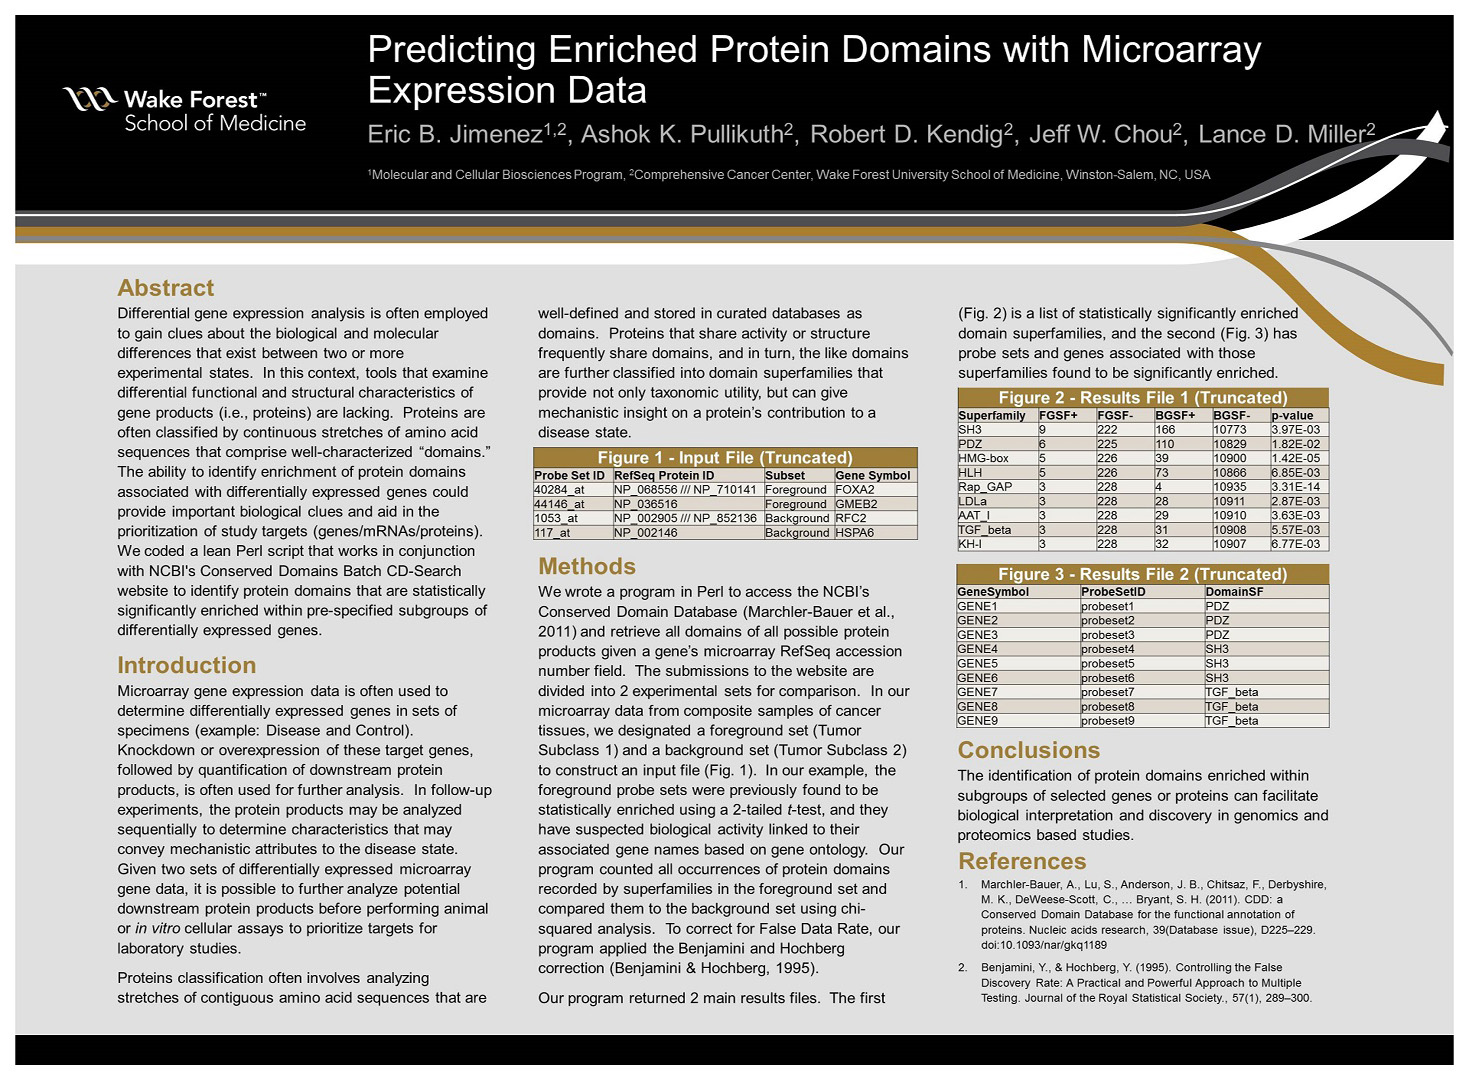 Predictor of Enriched Protein Domains